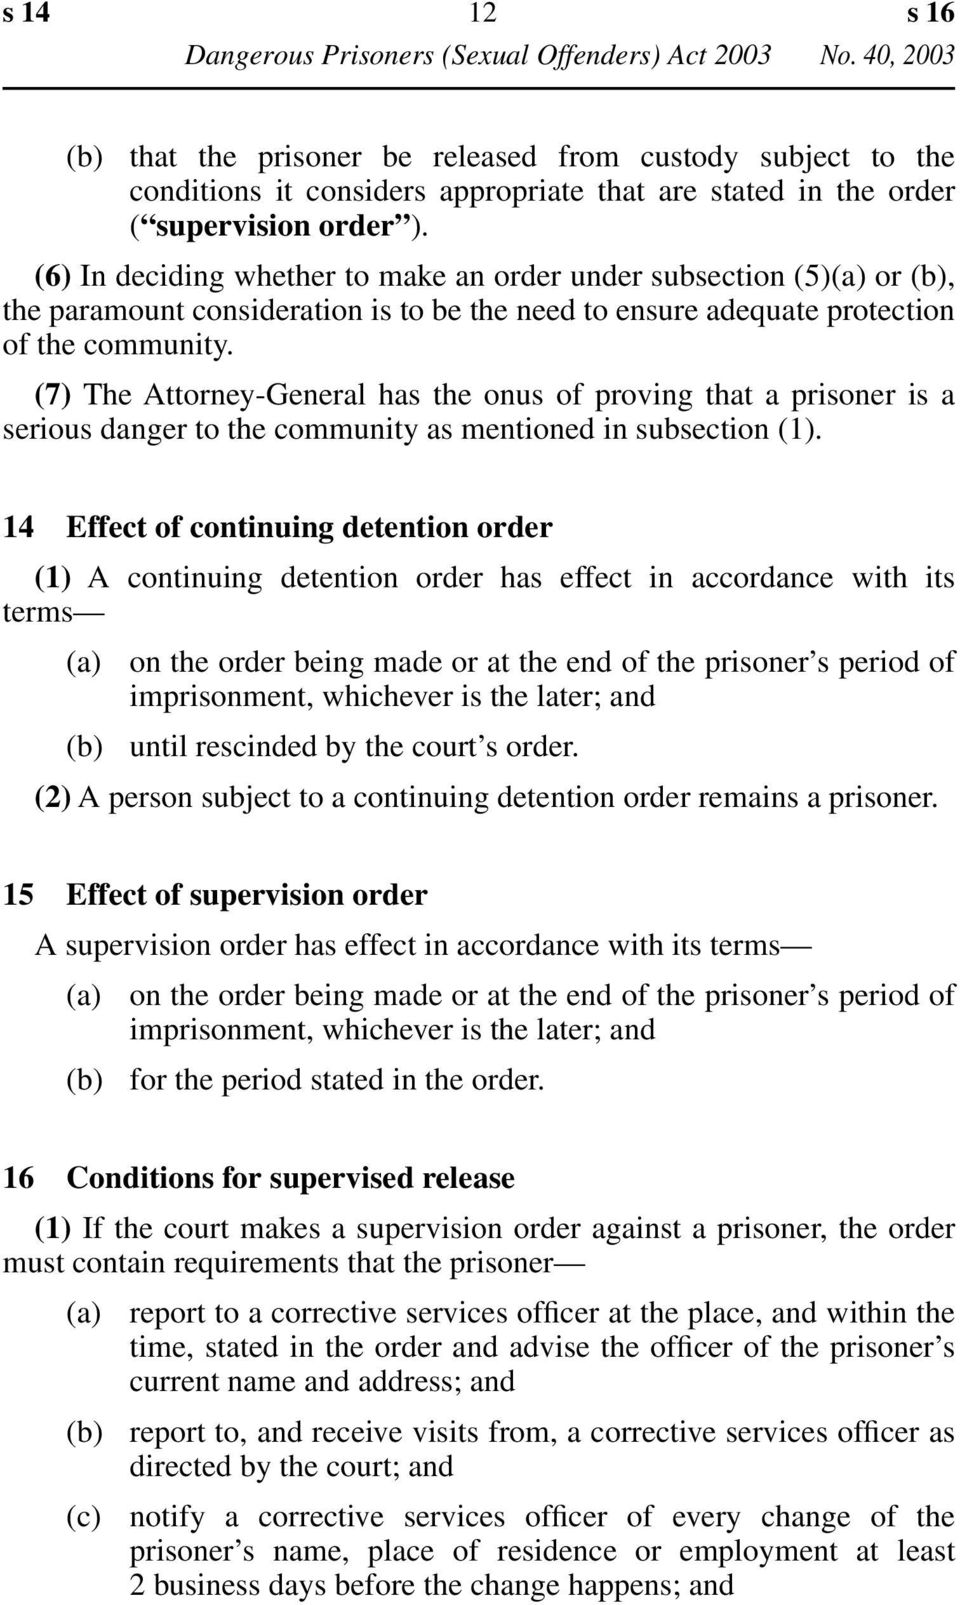 (7) The Attorney-General has the onus of proving that a prisoner is a serious danger to the community as mentioned in subsection (1).